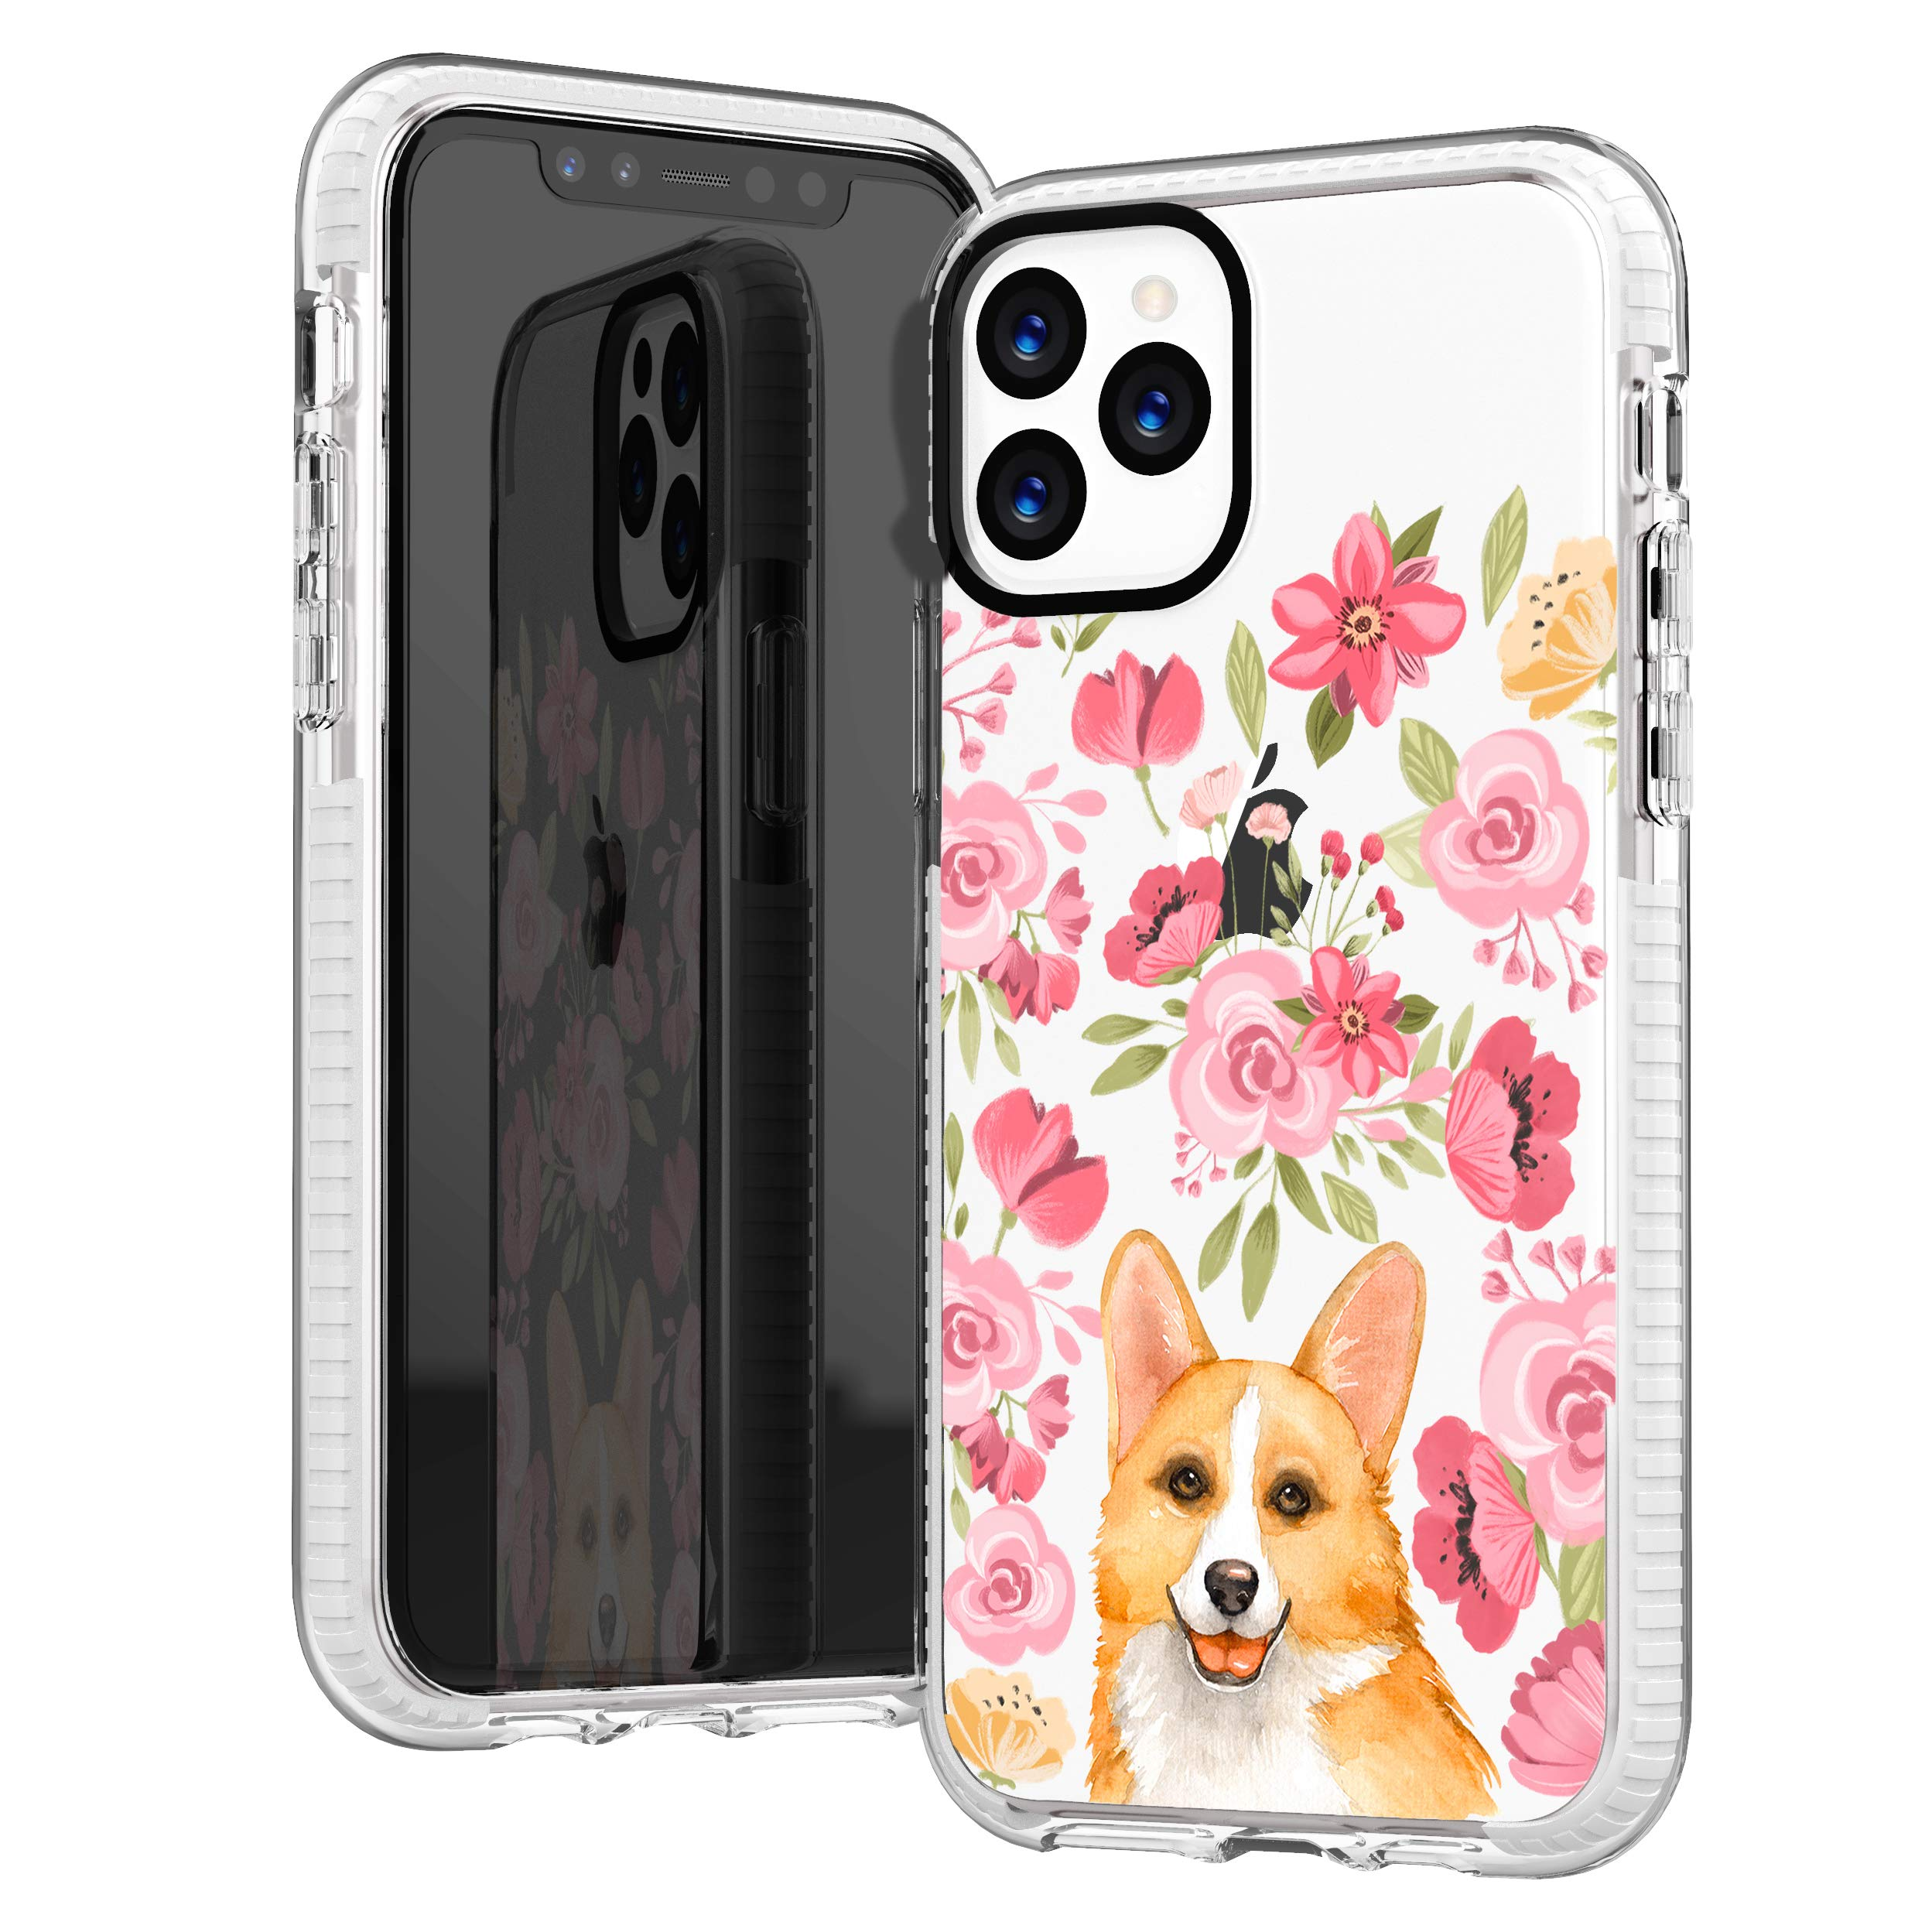 iPhone 11 Pro Max Clear Case,Cute Corgi with Pink Blooms Flowers Floral Daisy Love Funny Puppy Dog Trendy Hipster Girls Women Soft Protective Clear Design Case Compatible for iPhone 11 Pro Max